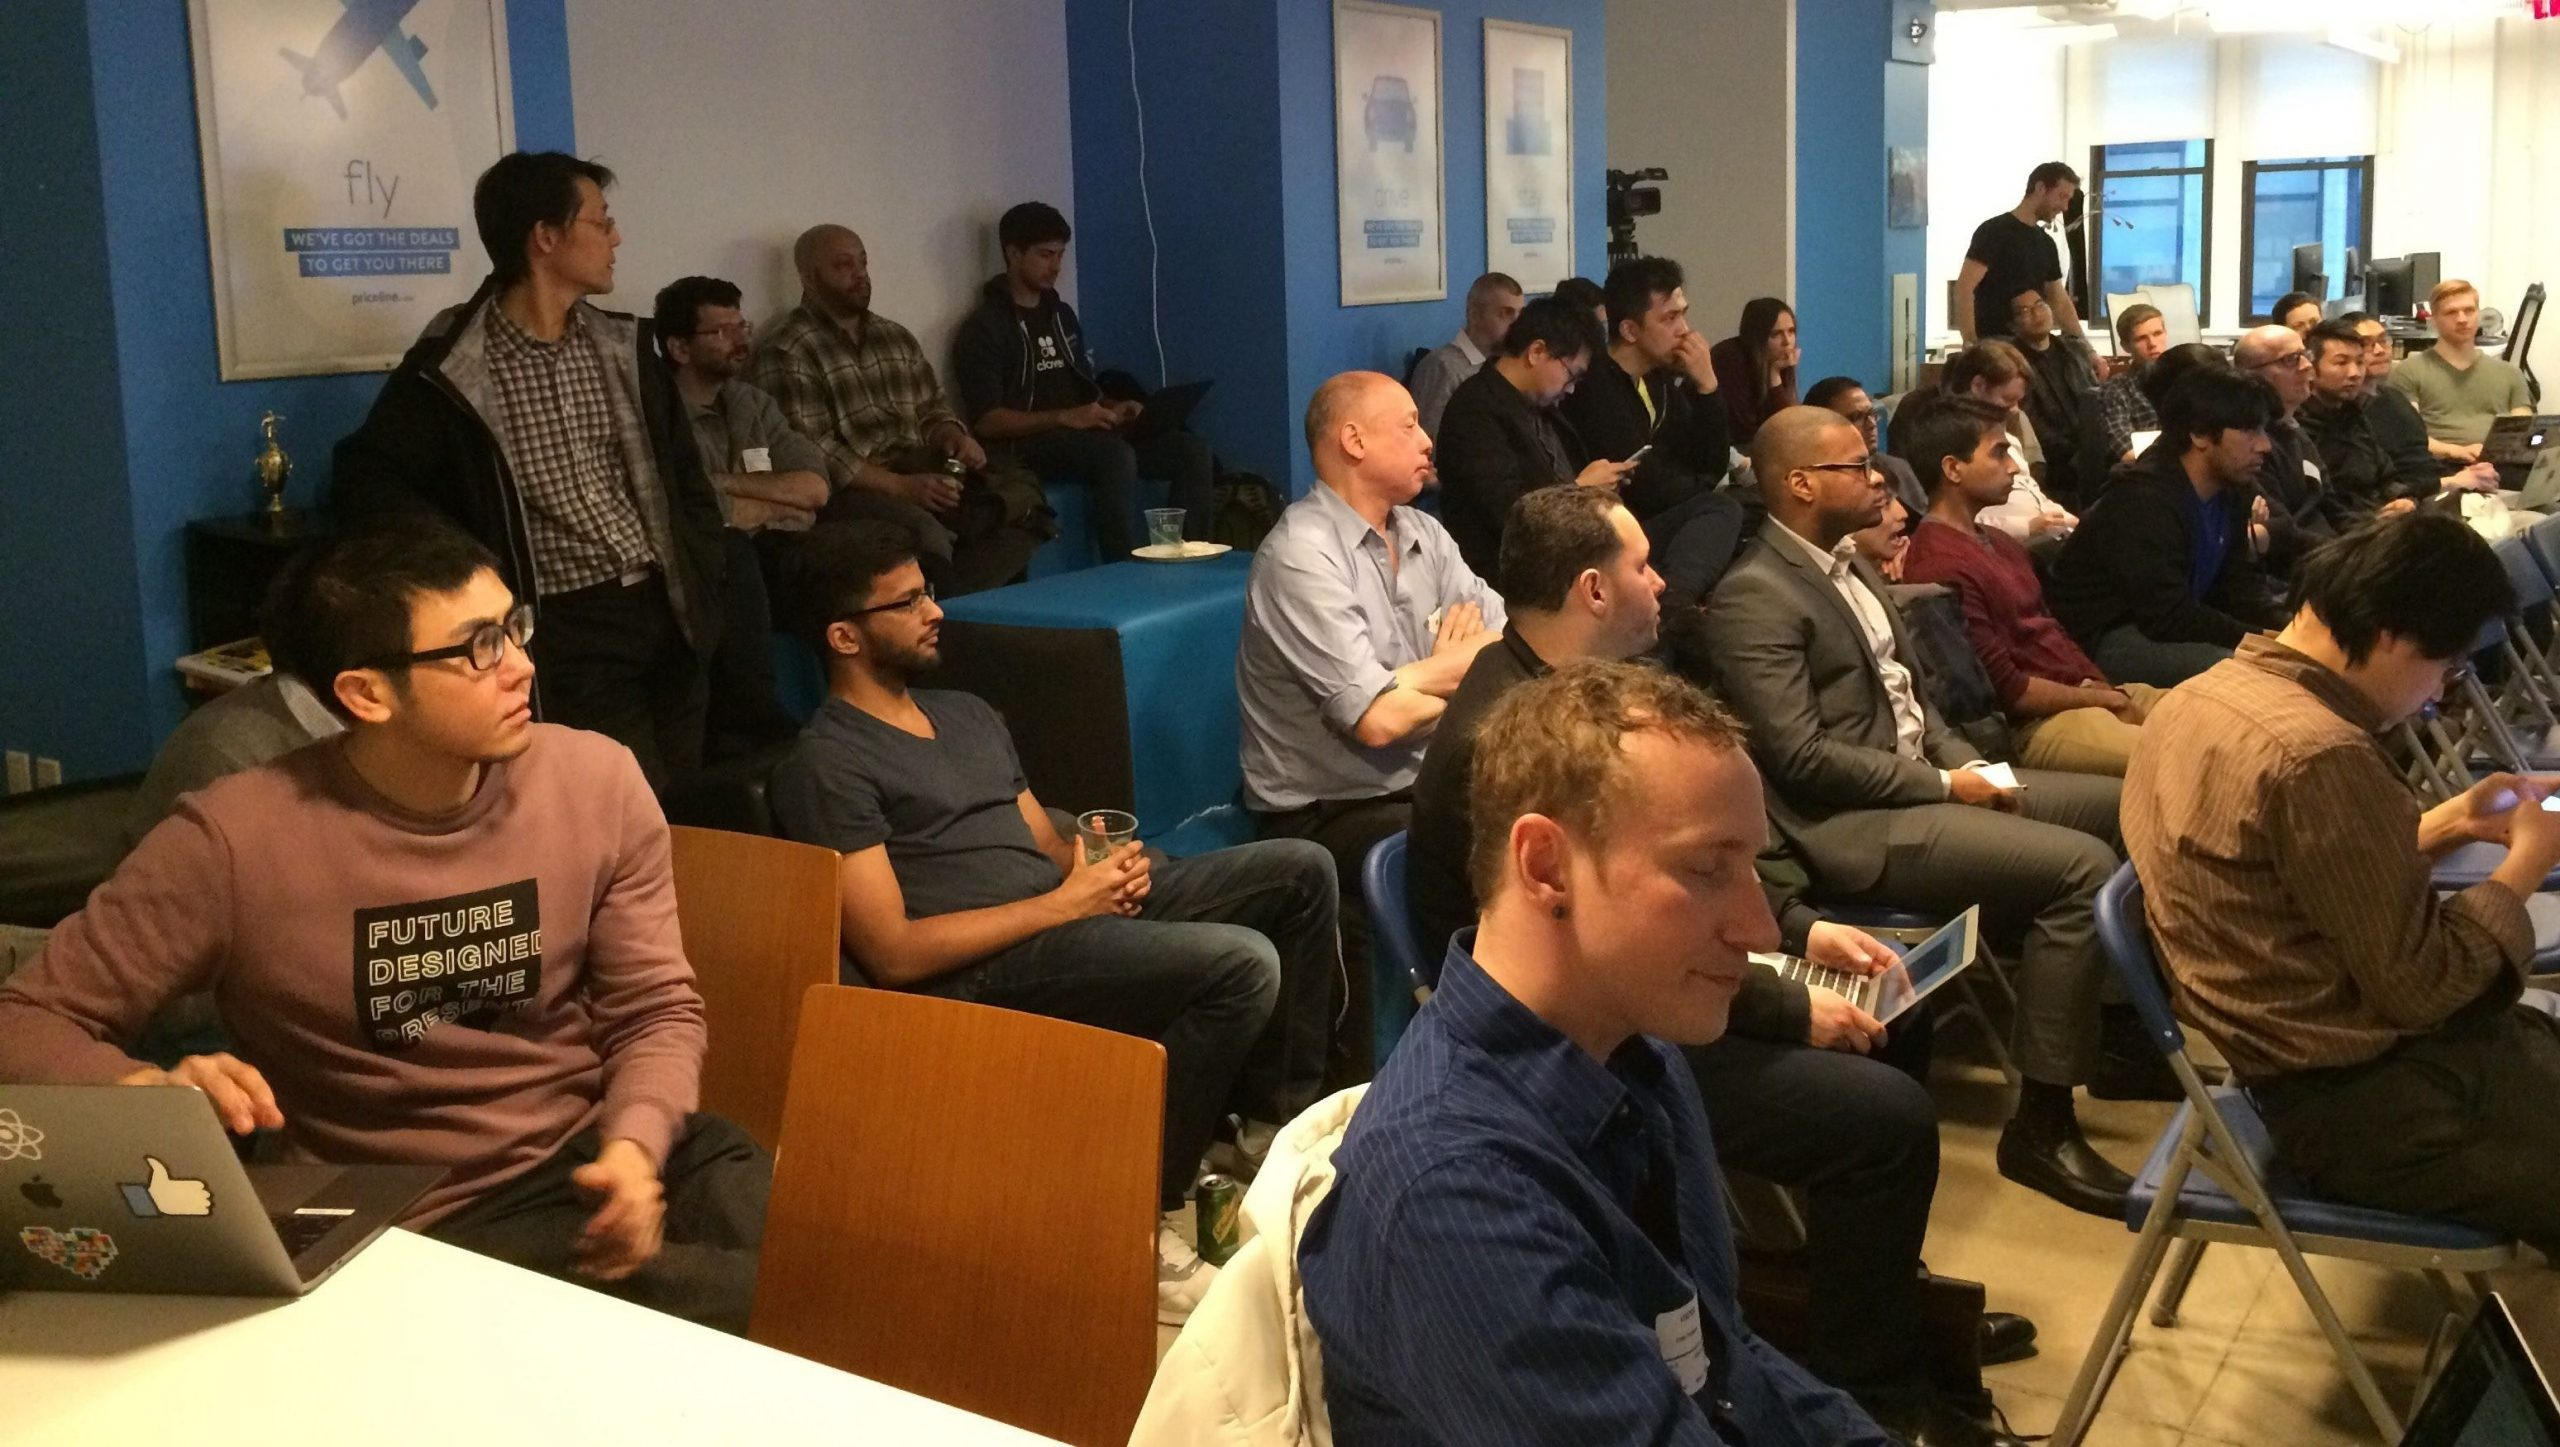 3639 image highres 484976071 scaled - JavaScript Night # with Presenter 1, Presenter 2, Topic 1, & Topic 2!!